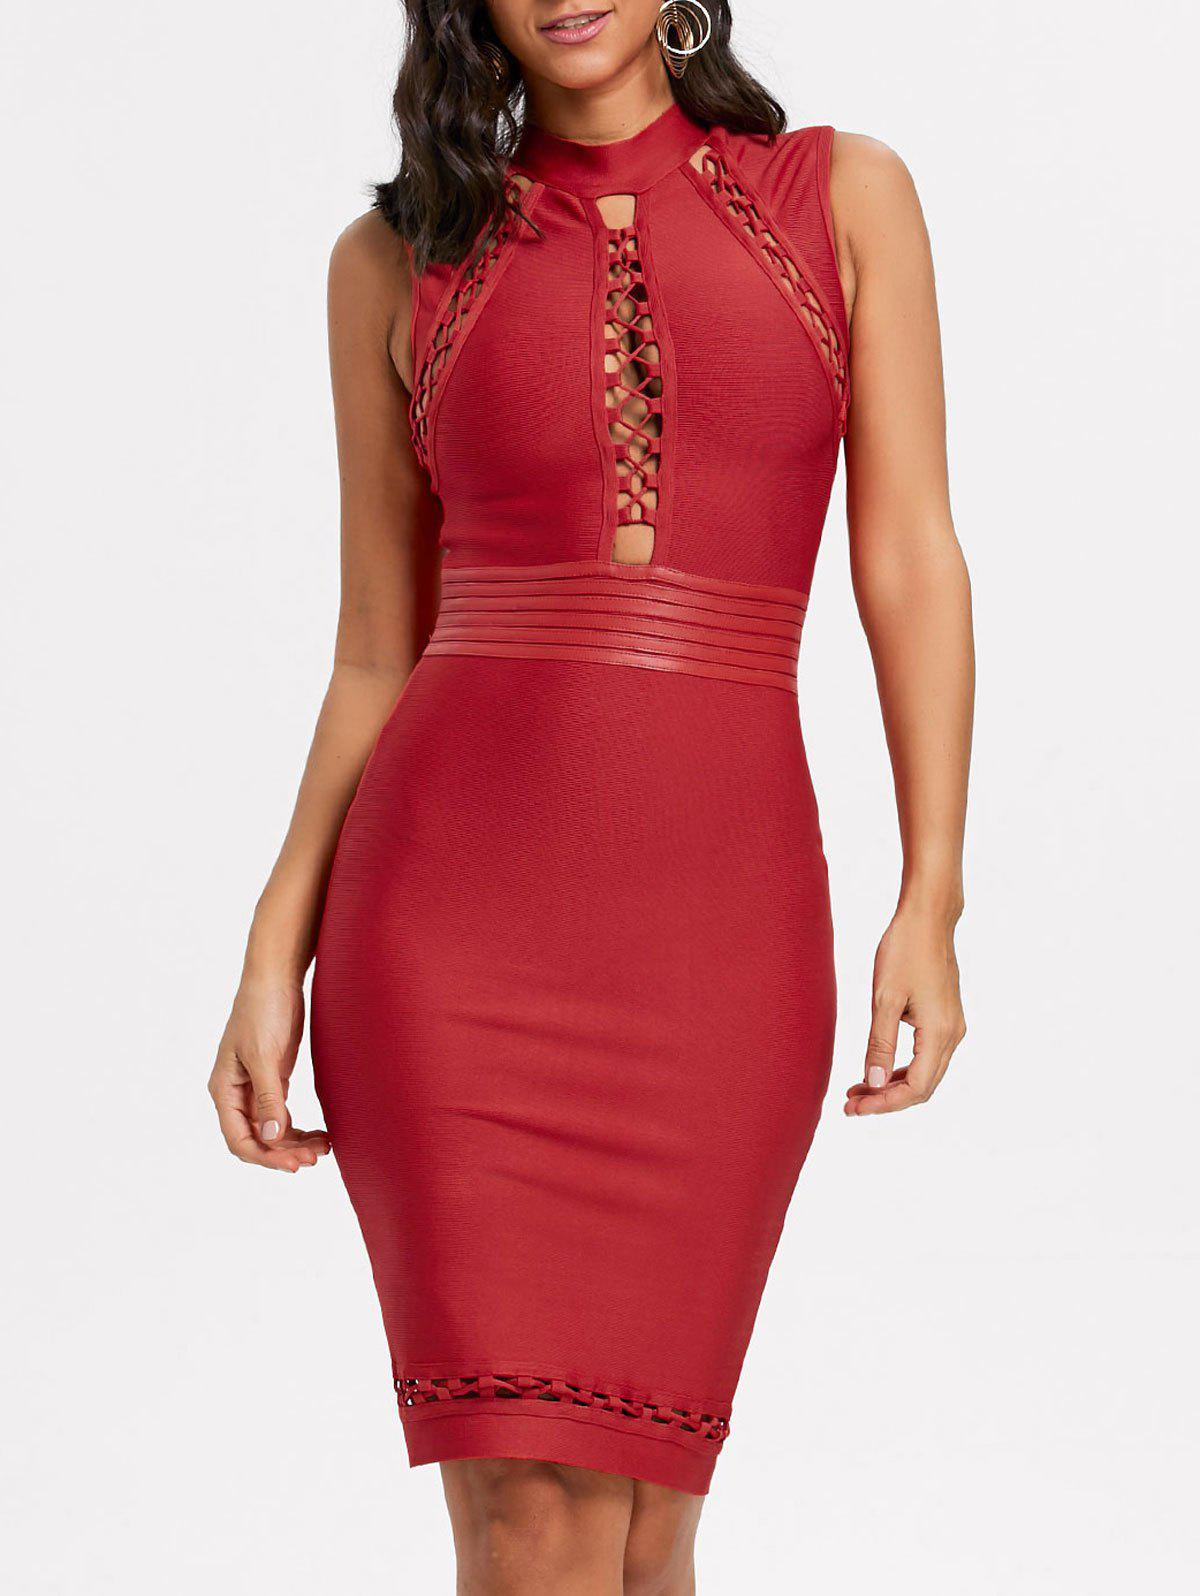 Lattice Cut Out Bodycon Bandage Dress - RED M